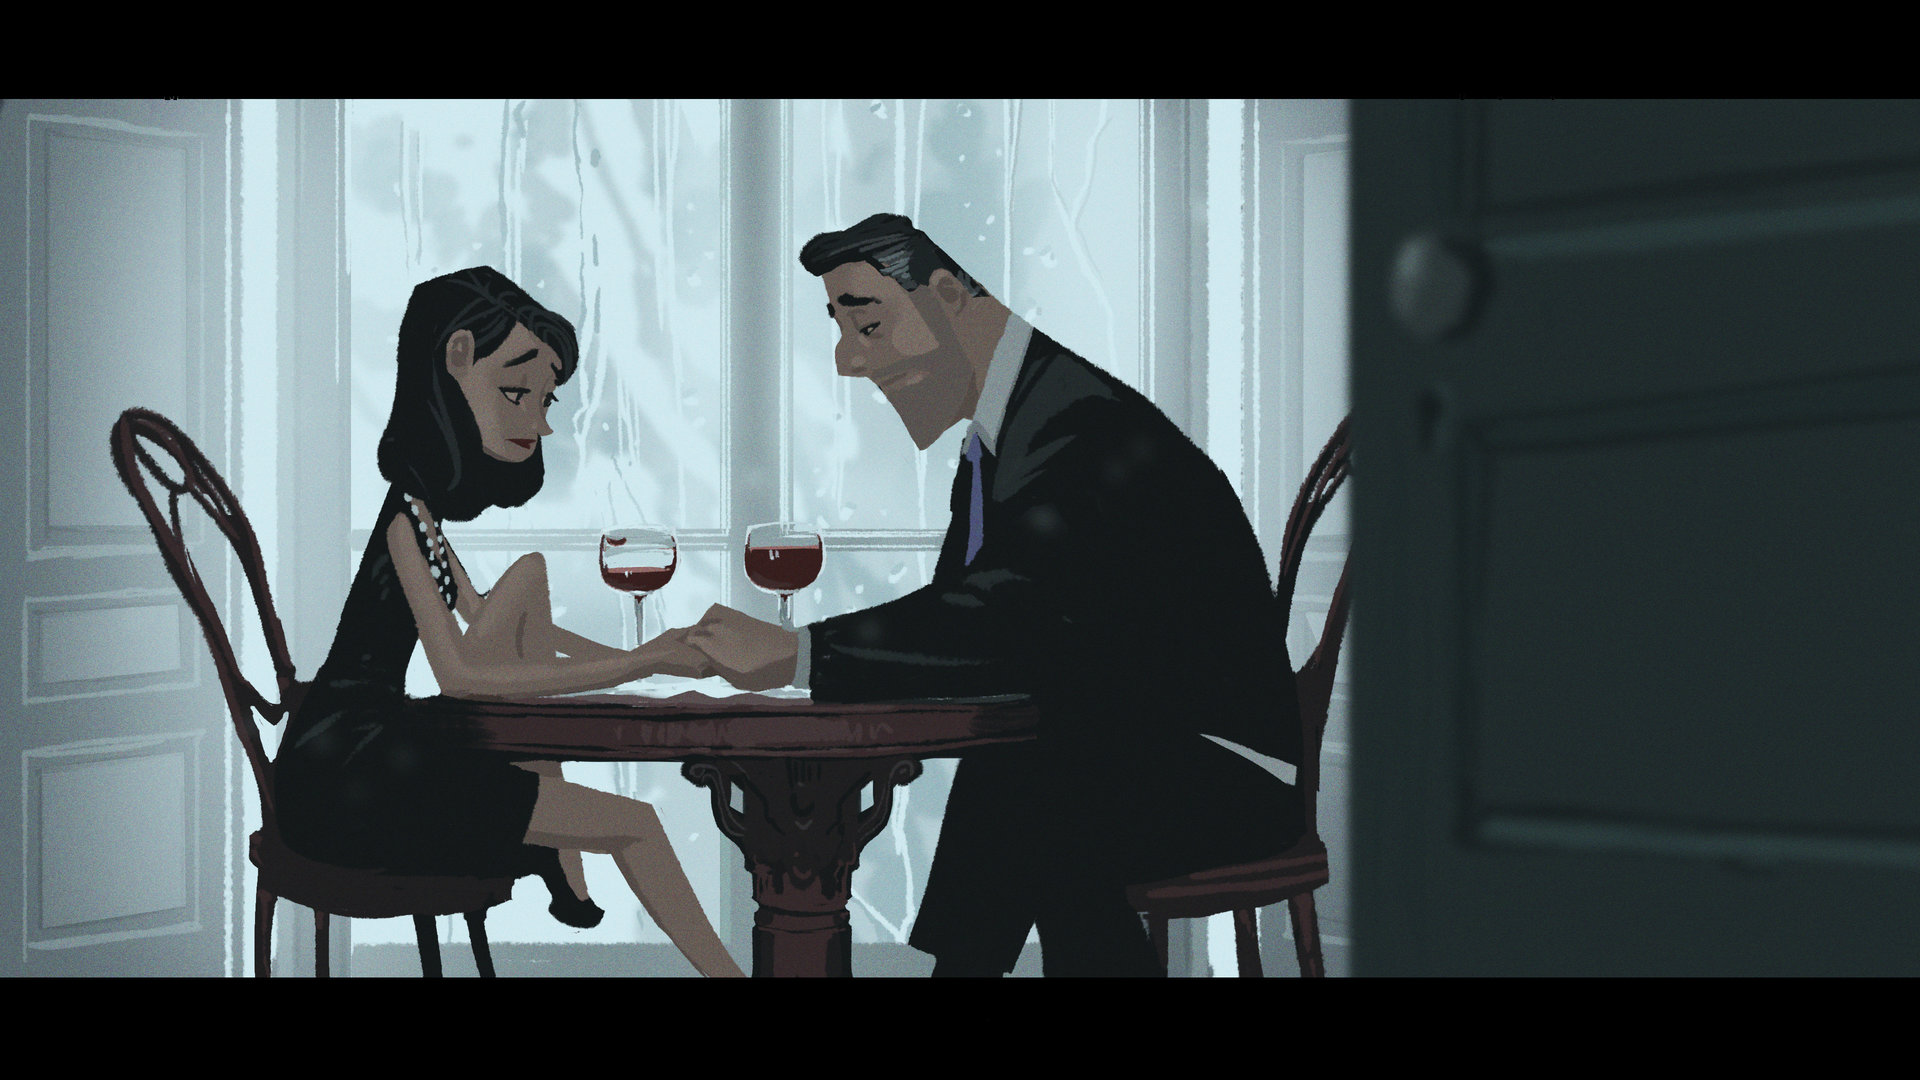 mike redman digital painting illustration A necessary conversation Couple